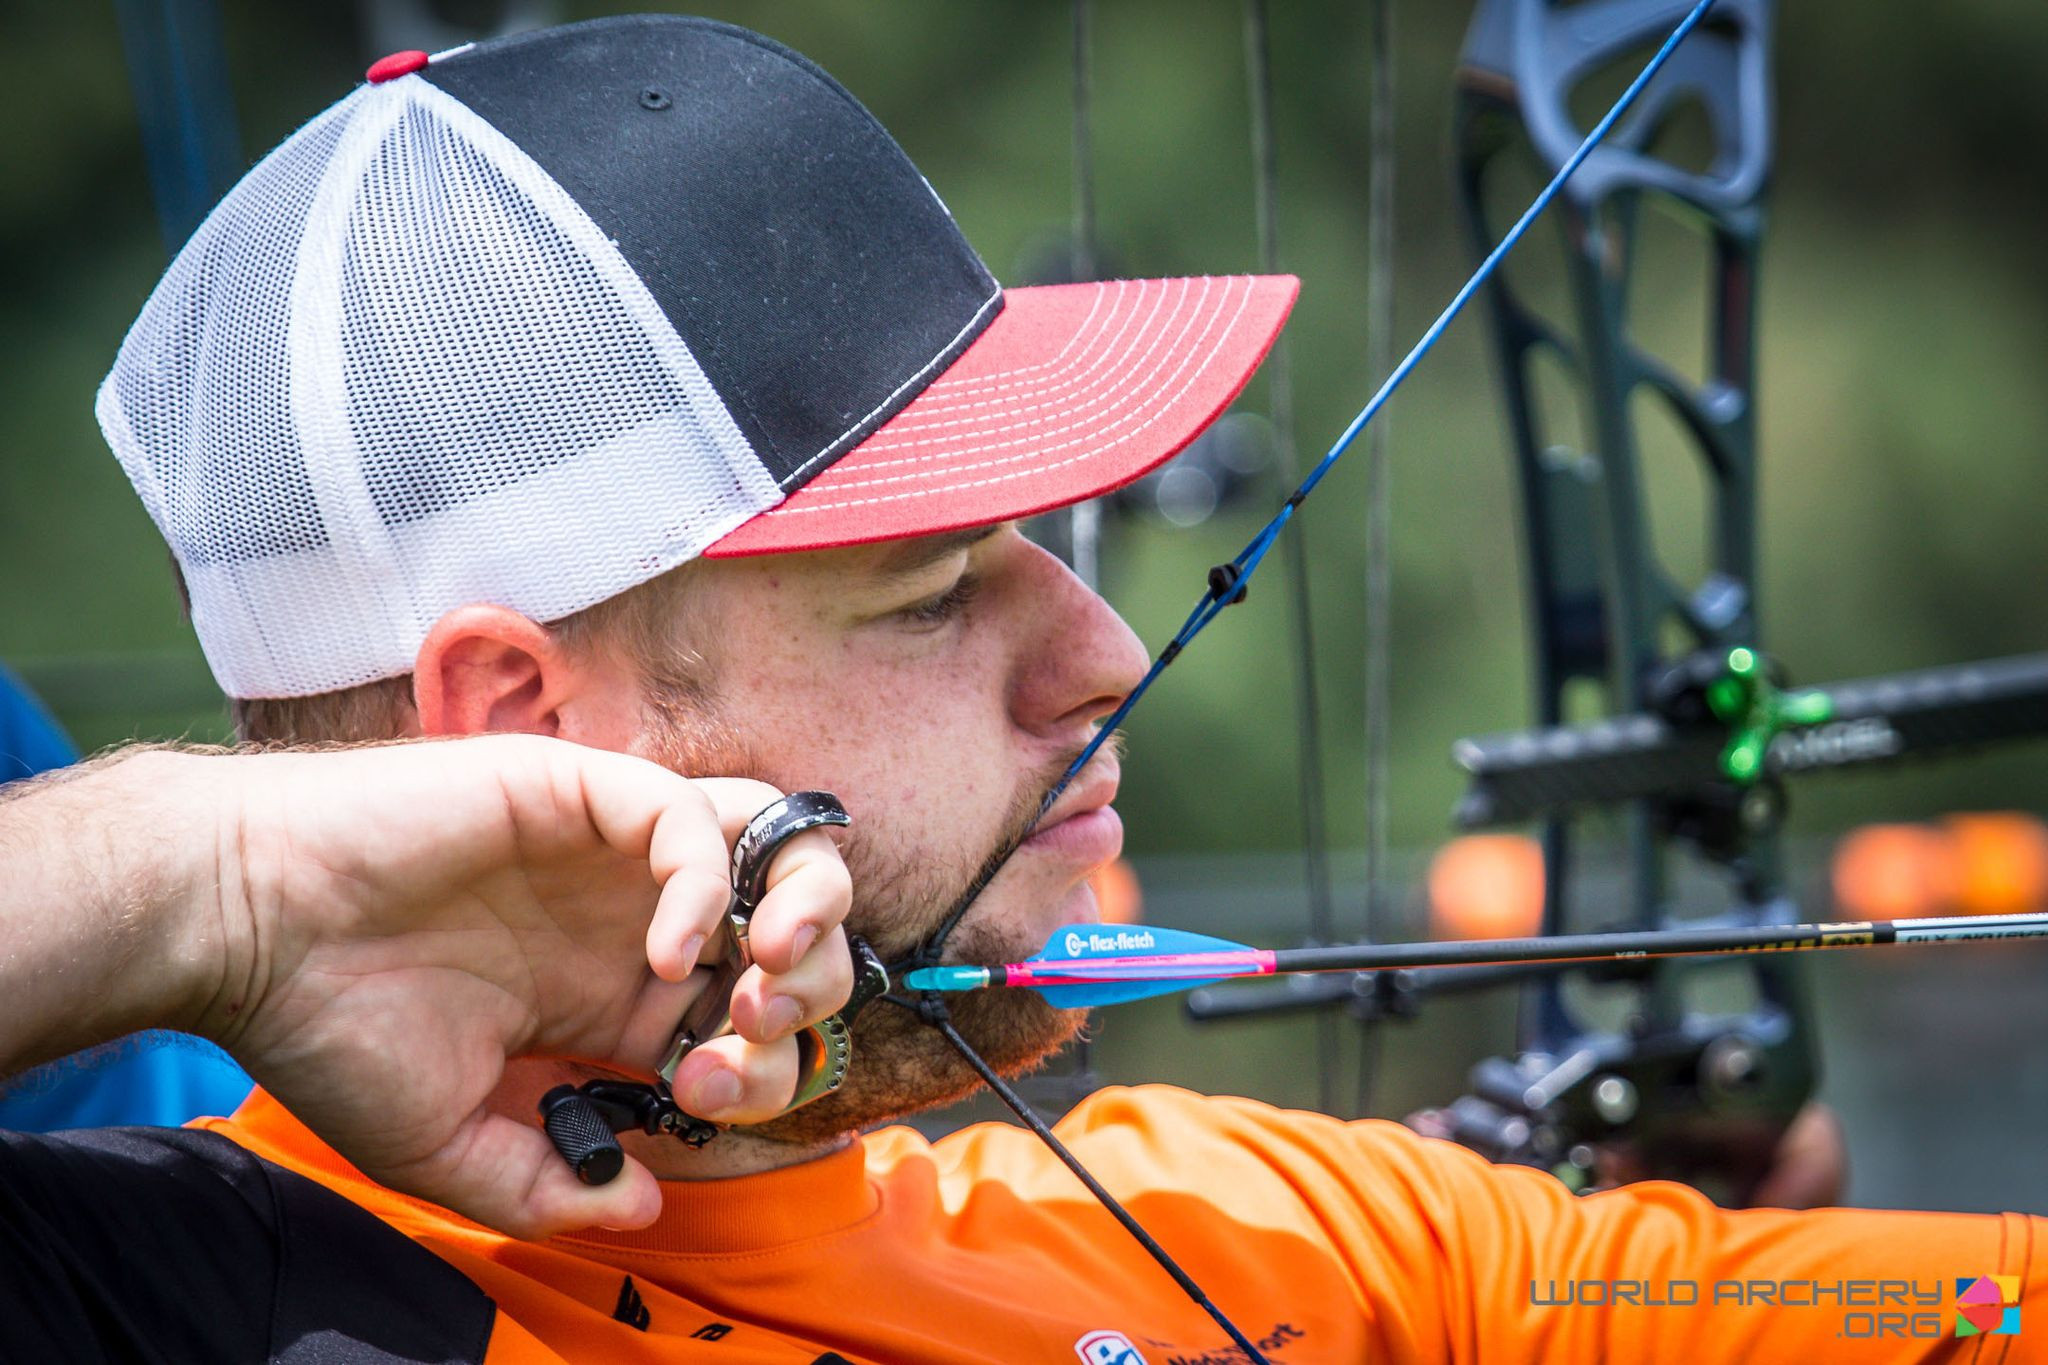 Schloesser breaks 1440 round archery world record